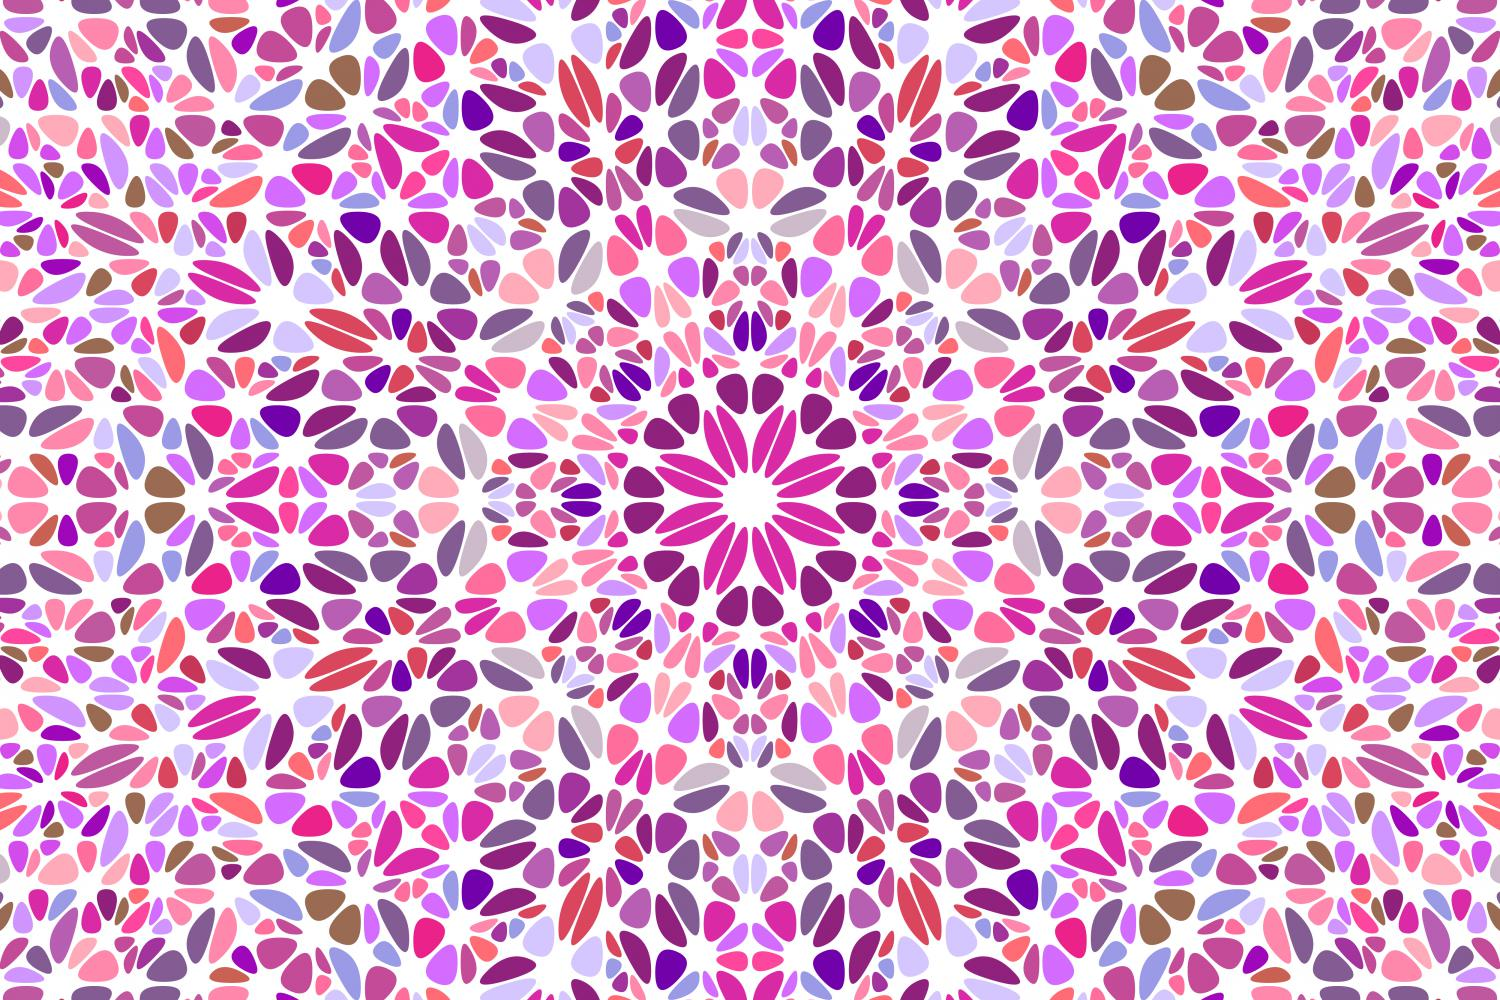 48 Floral Mandala Backgrounds example image 12